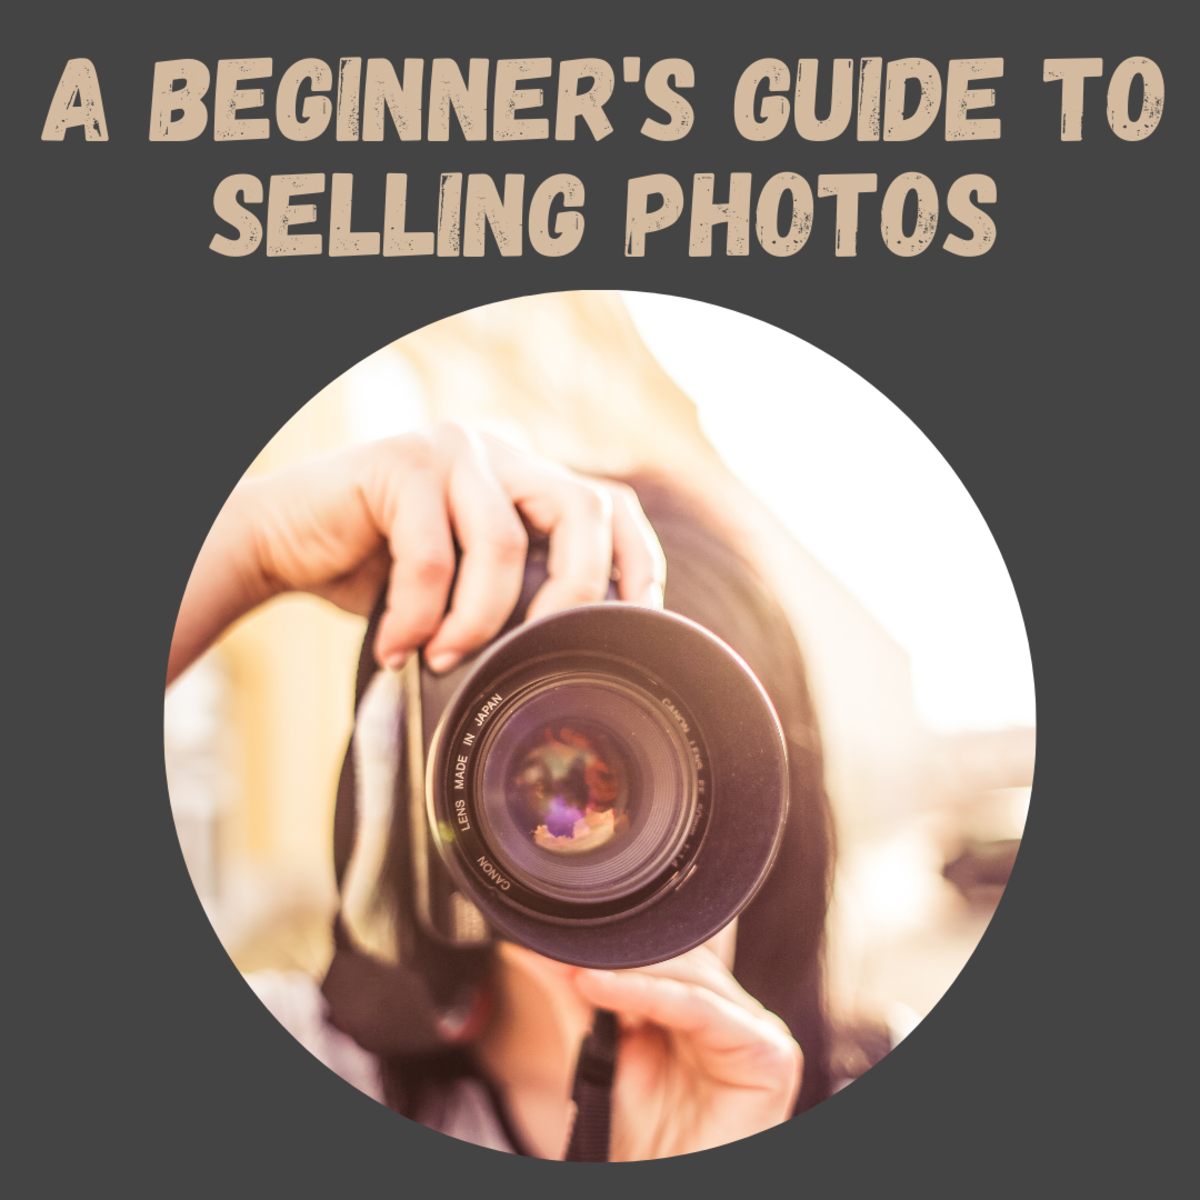 Learn tips and tricks for selling your photography!